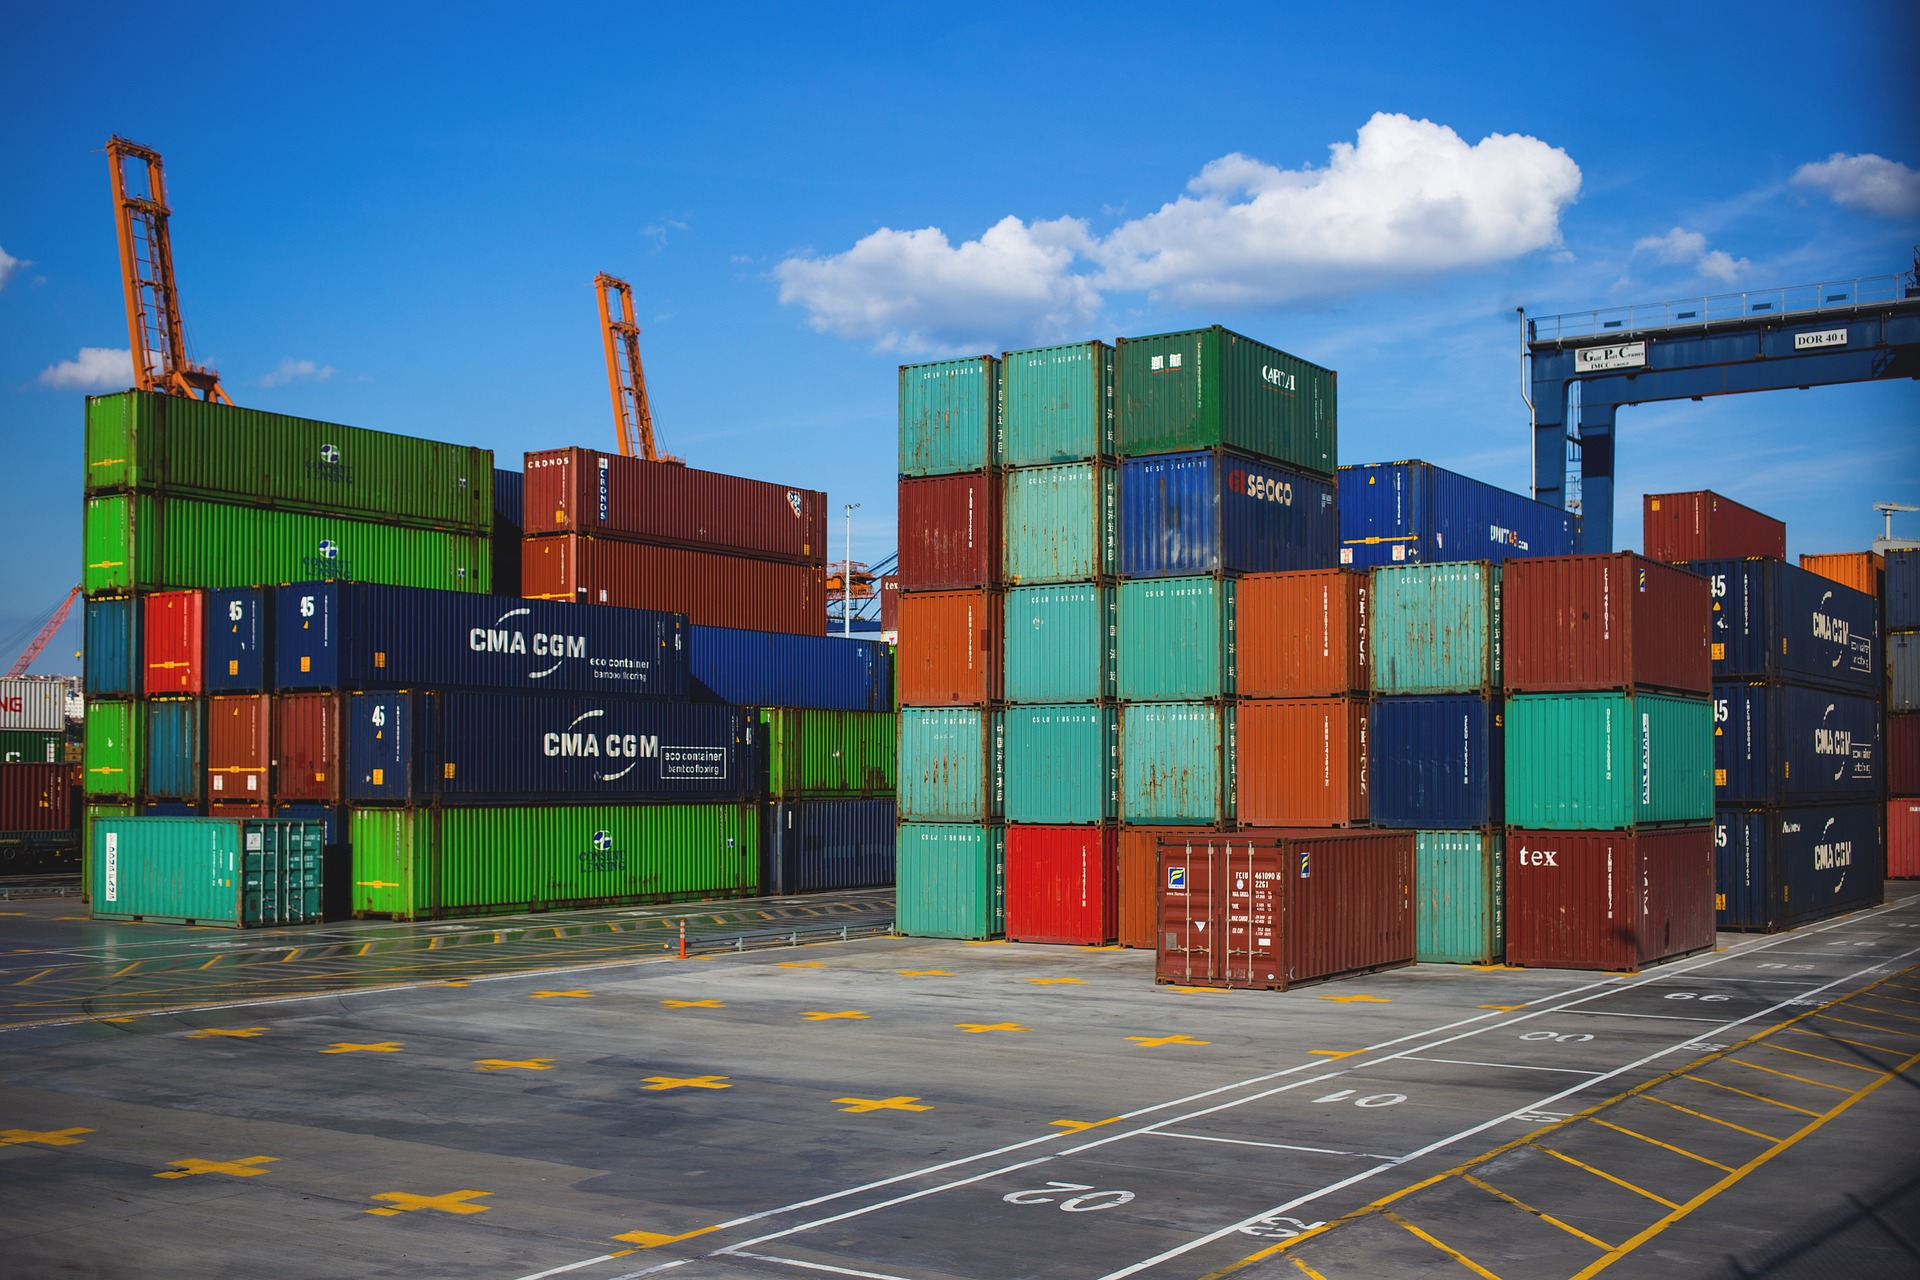 Top 5 Logistics Companies In The World